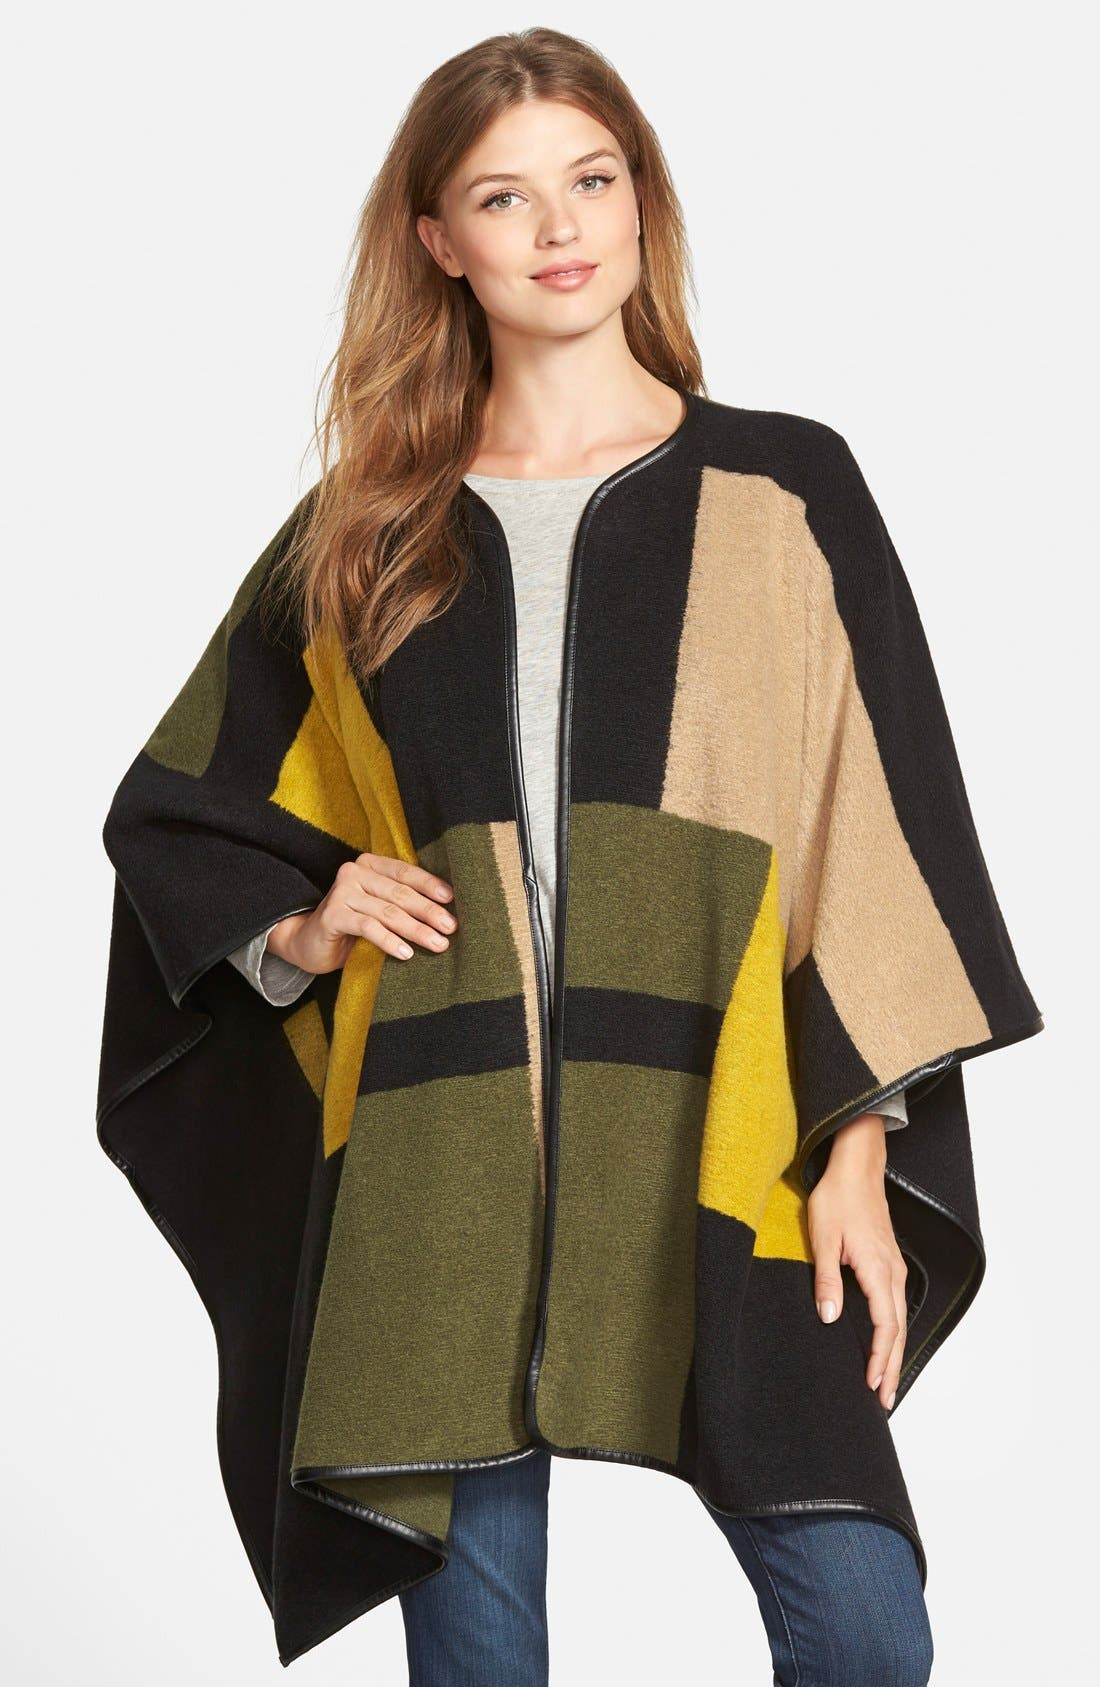 Alternate Image 1 Selected - Vince Camuto Blanket Jacquard Poncho (Regular & Petite)